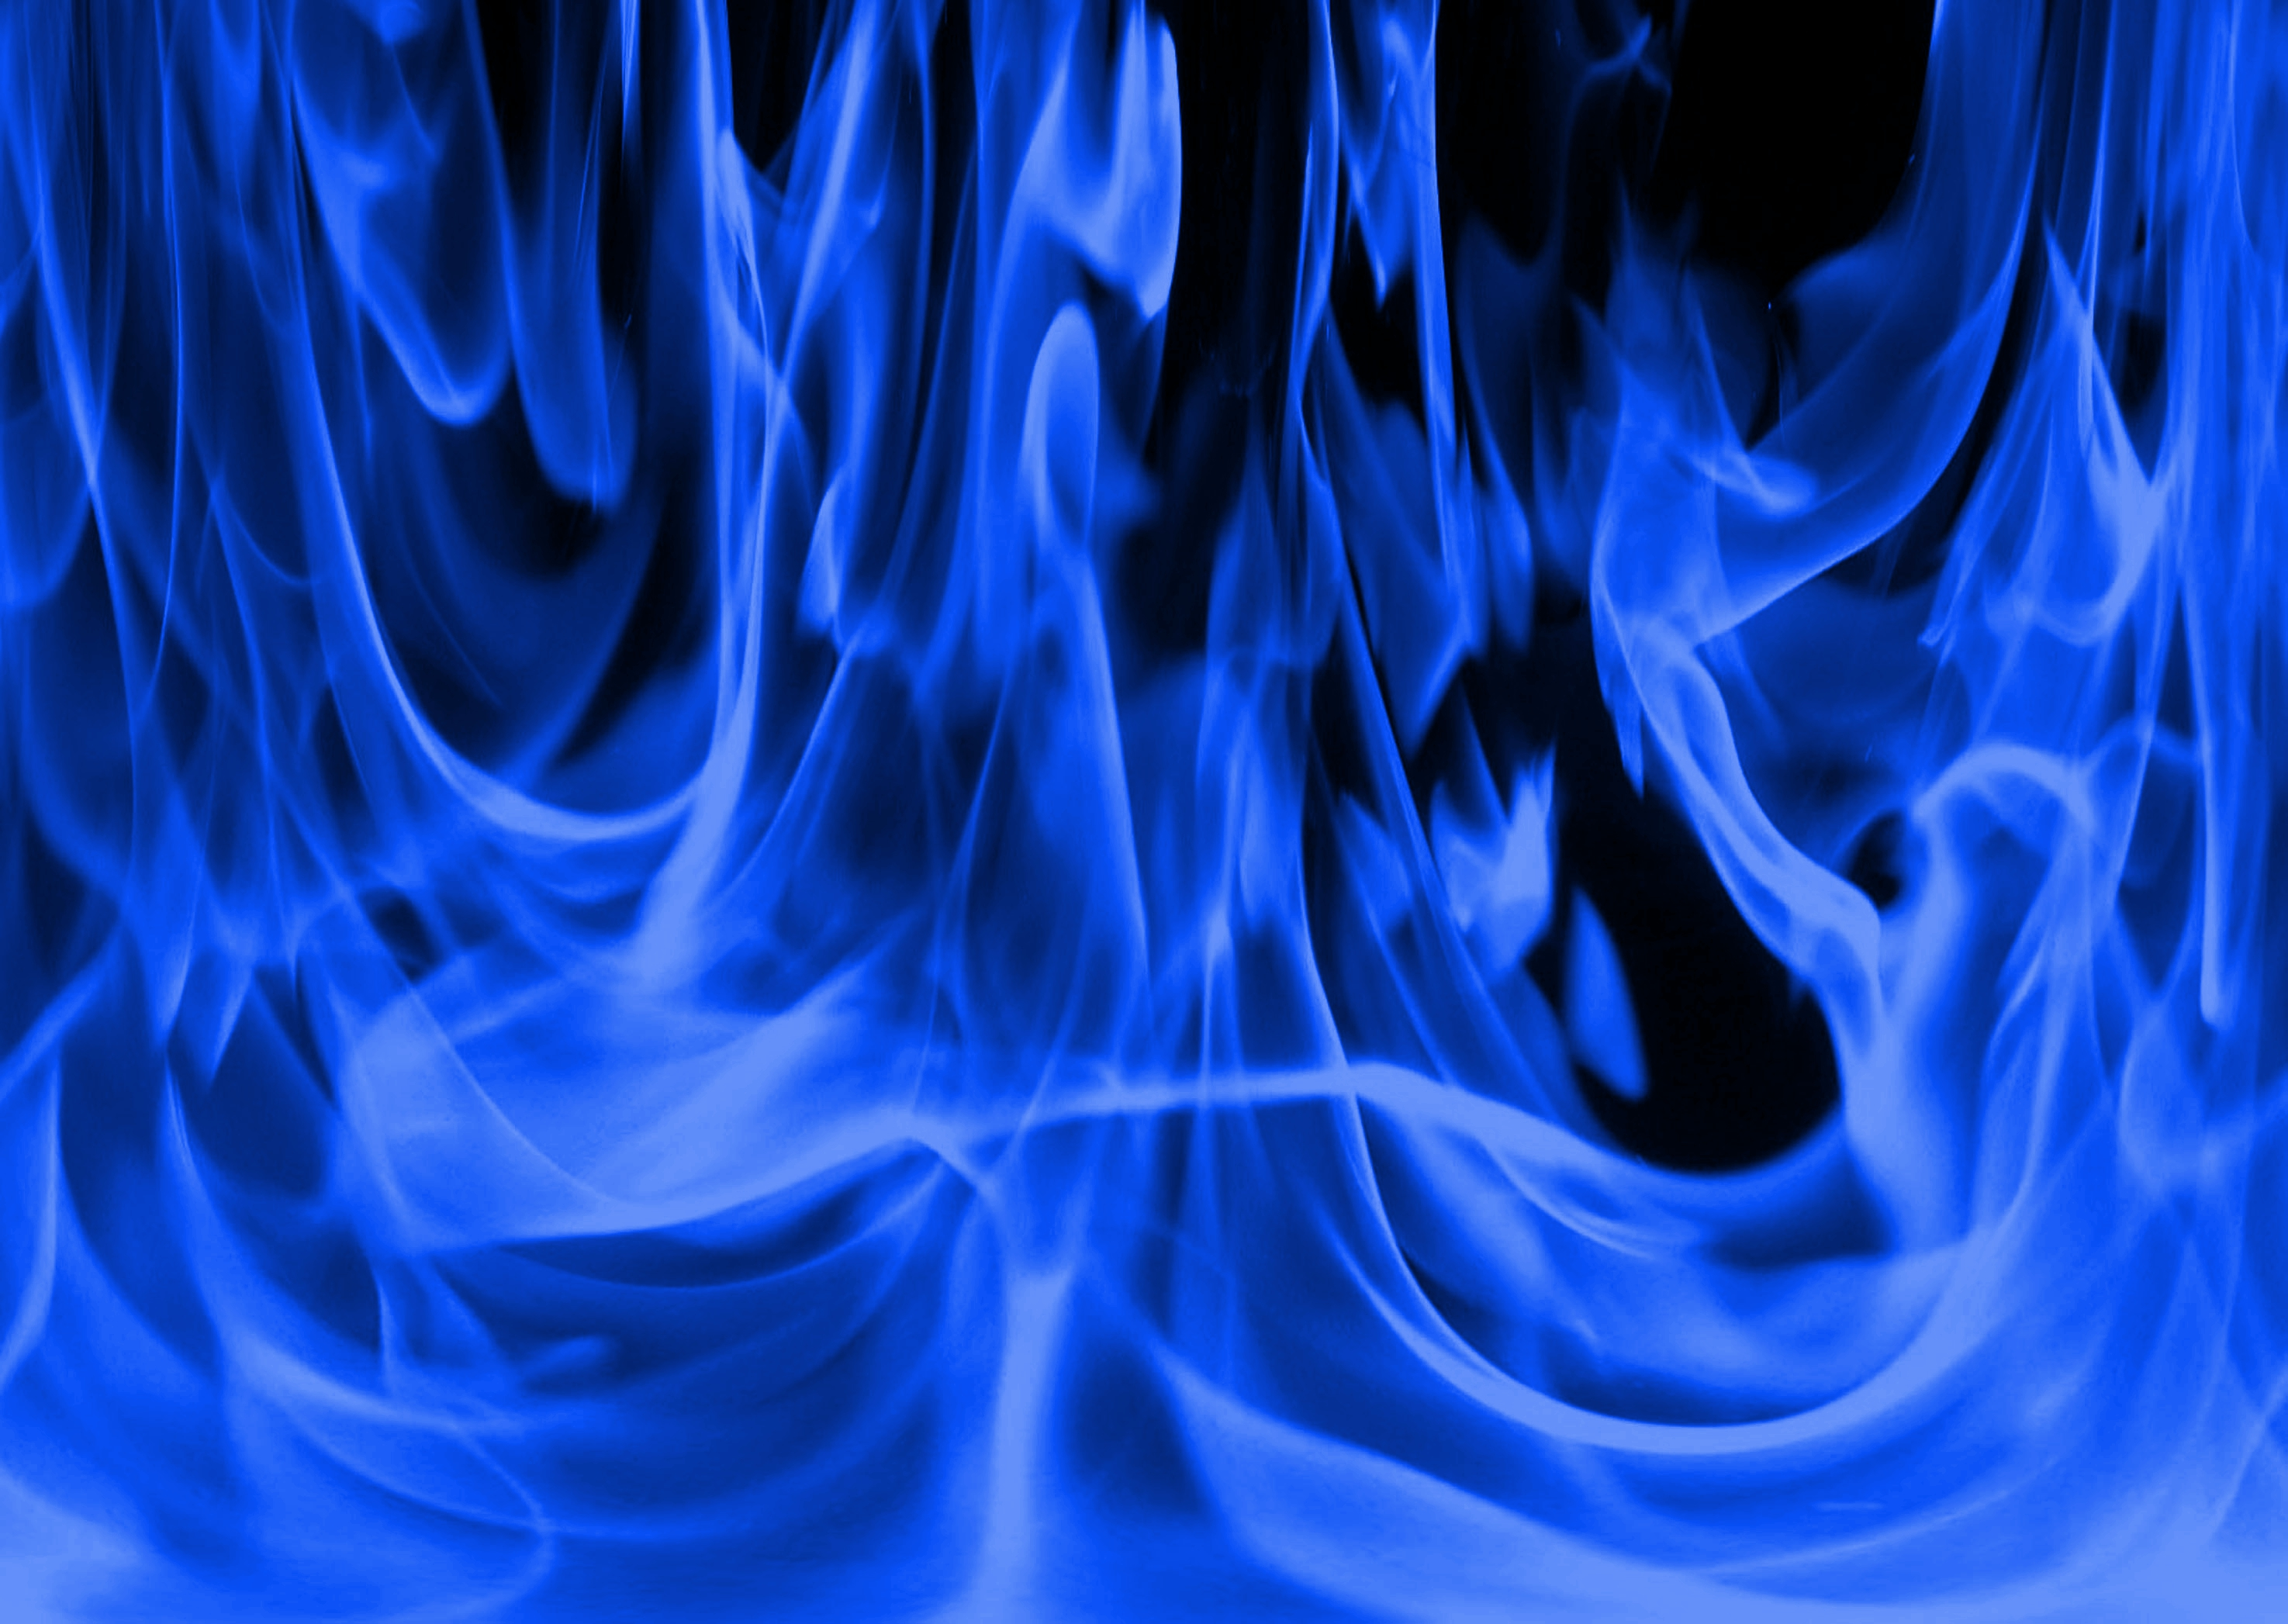 Related Pictures blue fire wallpaper 2950x2094